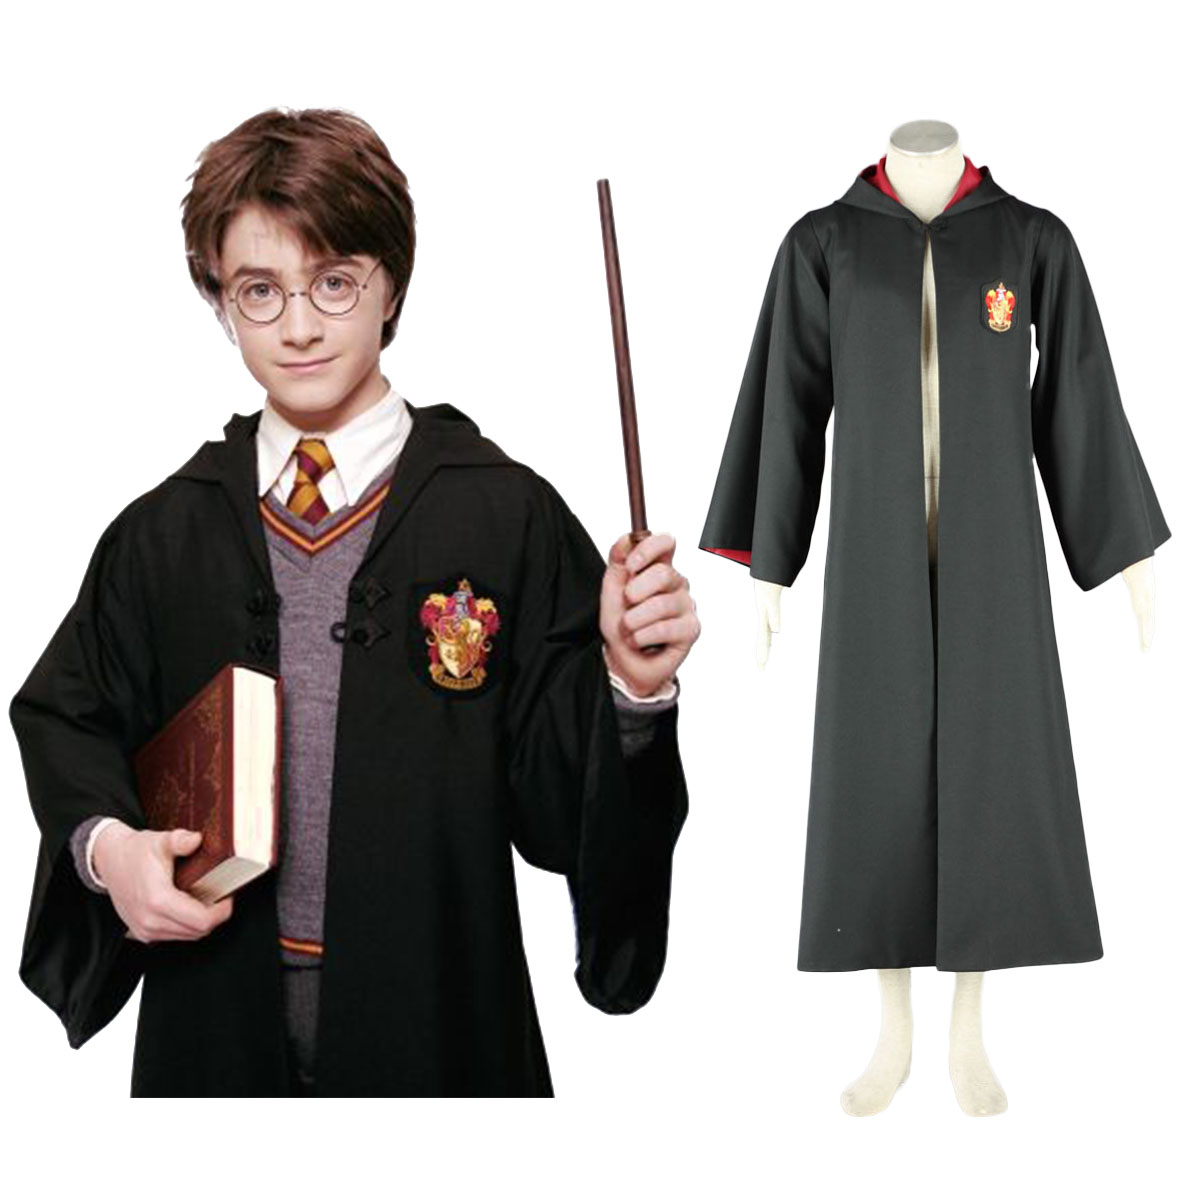 Harry Potter Gryffindor Uniform Cloak Cosplay Costumes South Africa